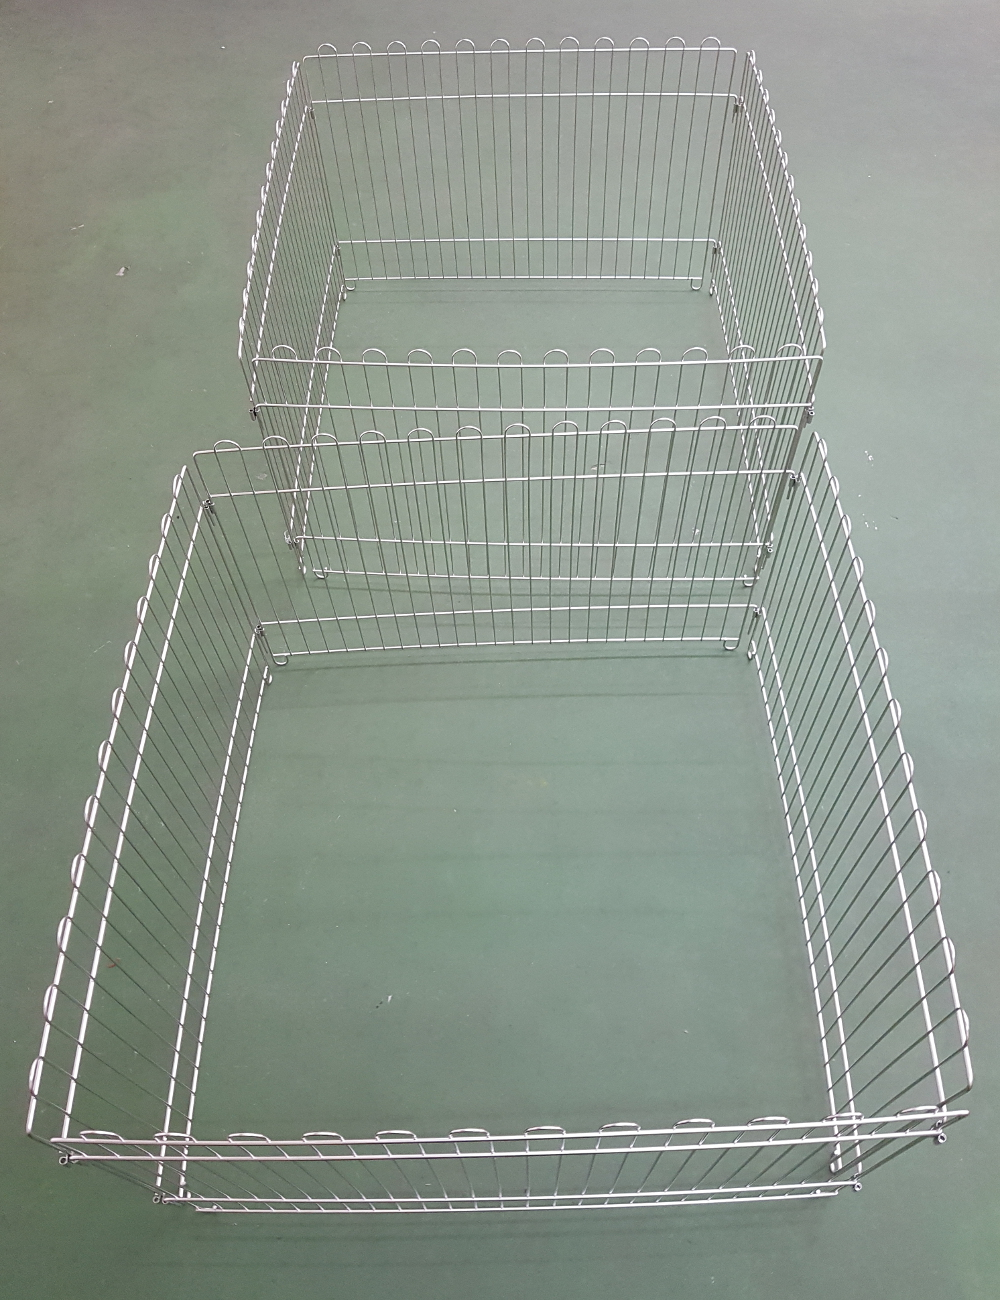 Stainless Steel Pet PlayPen 3feet x 2feet x 8pcs 304 Material